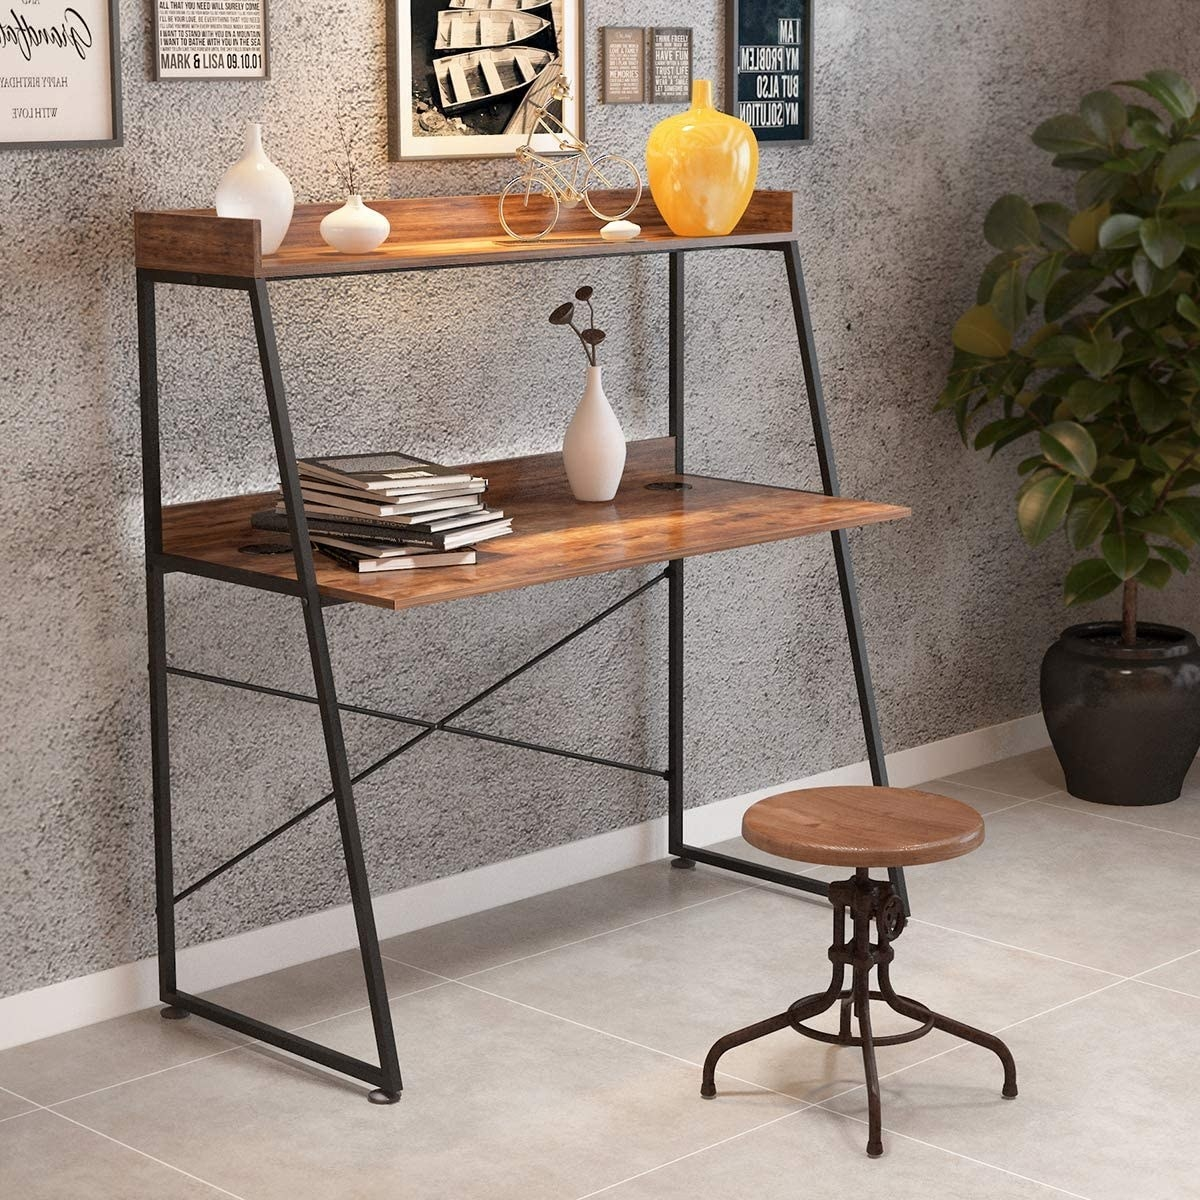 Wood-like desk with shelf above it with trinkets on it and black metal triangle legs